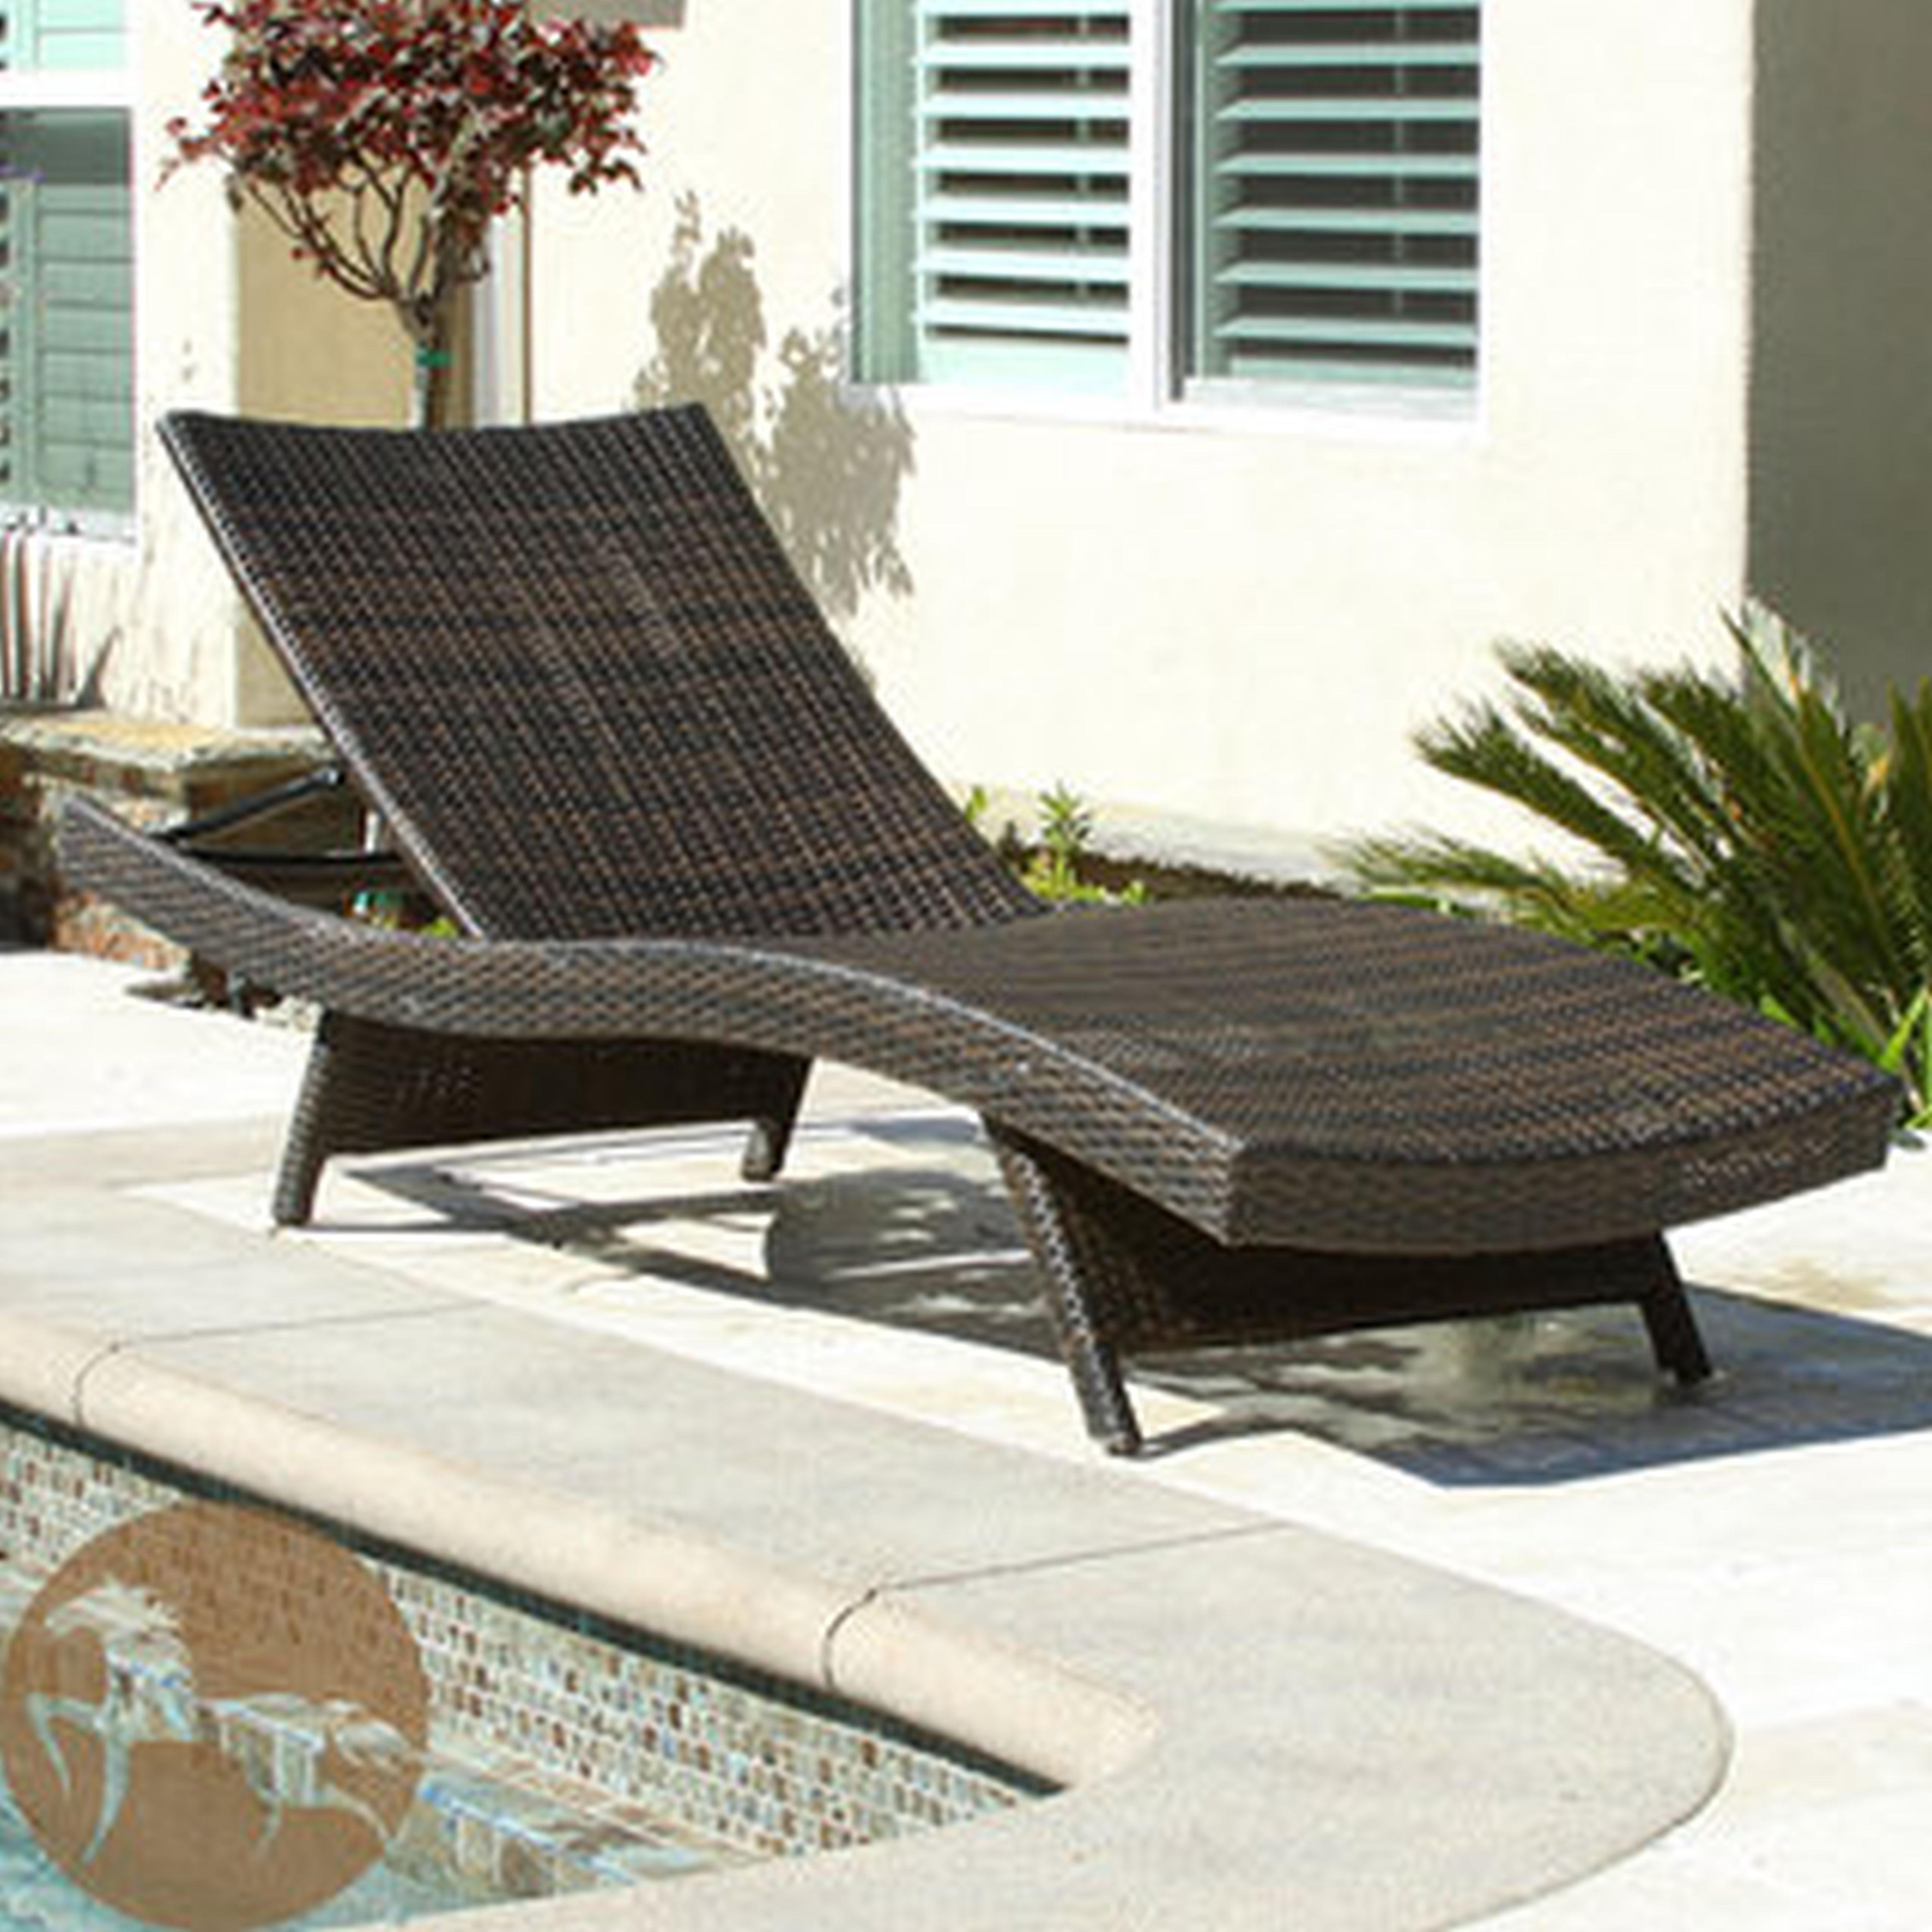 Patio Chaise Lounge As The Must Have Furniture In Your Pool Deck Inside Most Popular Outdoor Pool Furniture Chaise Lounges (View 11 of 15)